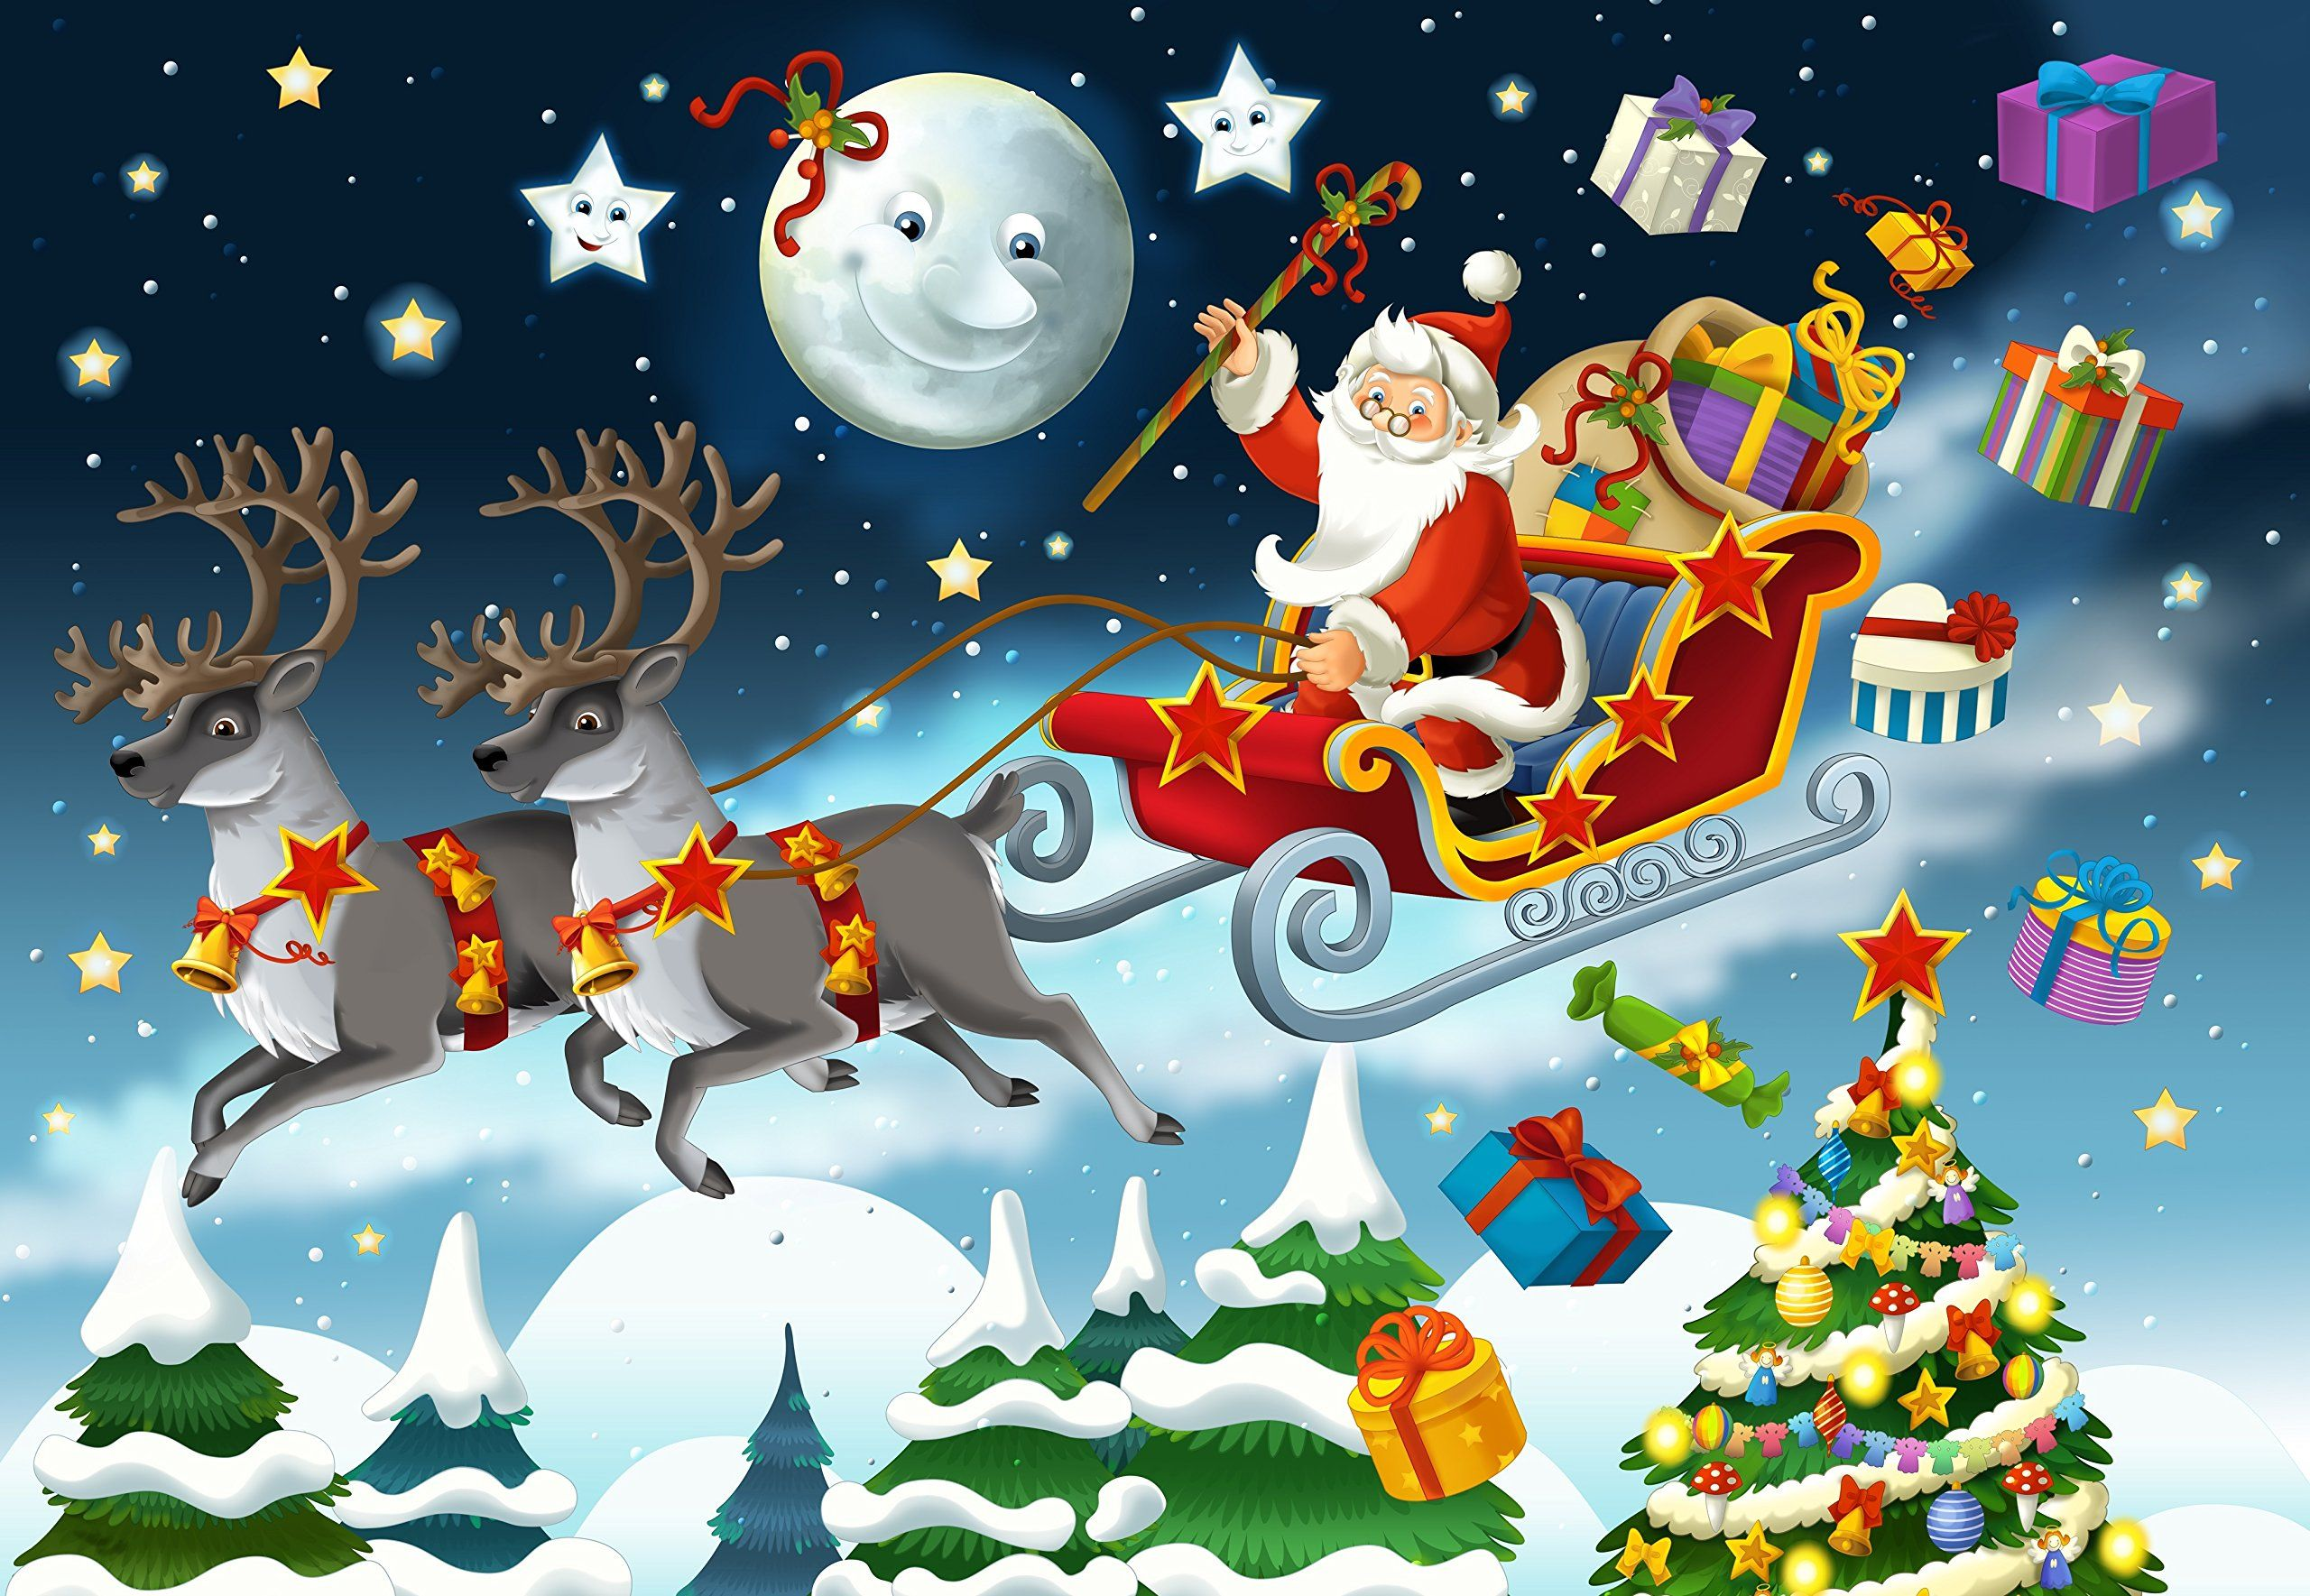 Wentworth The Christmas Santa Claus Illustration 250 Piece